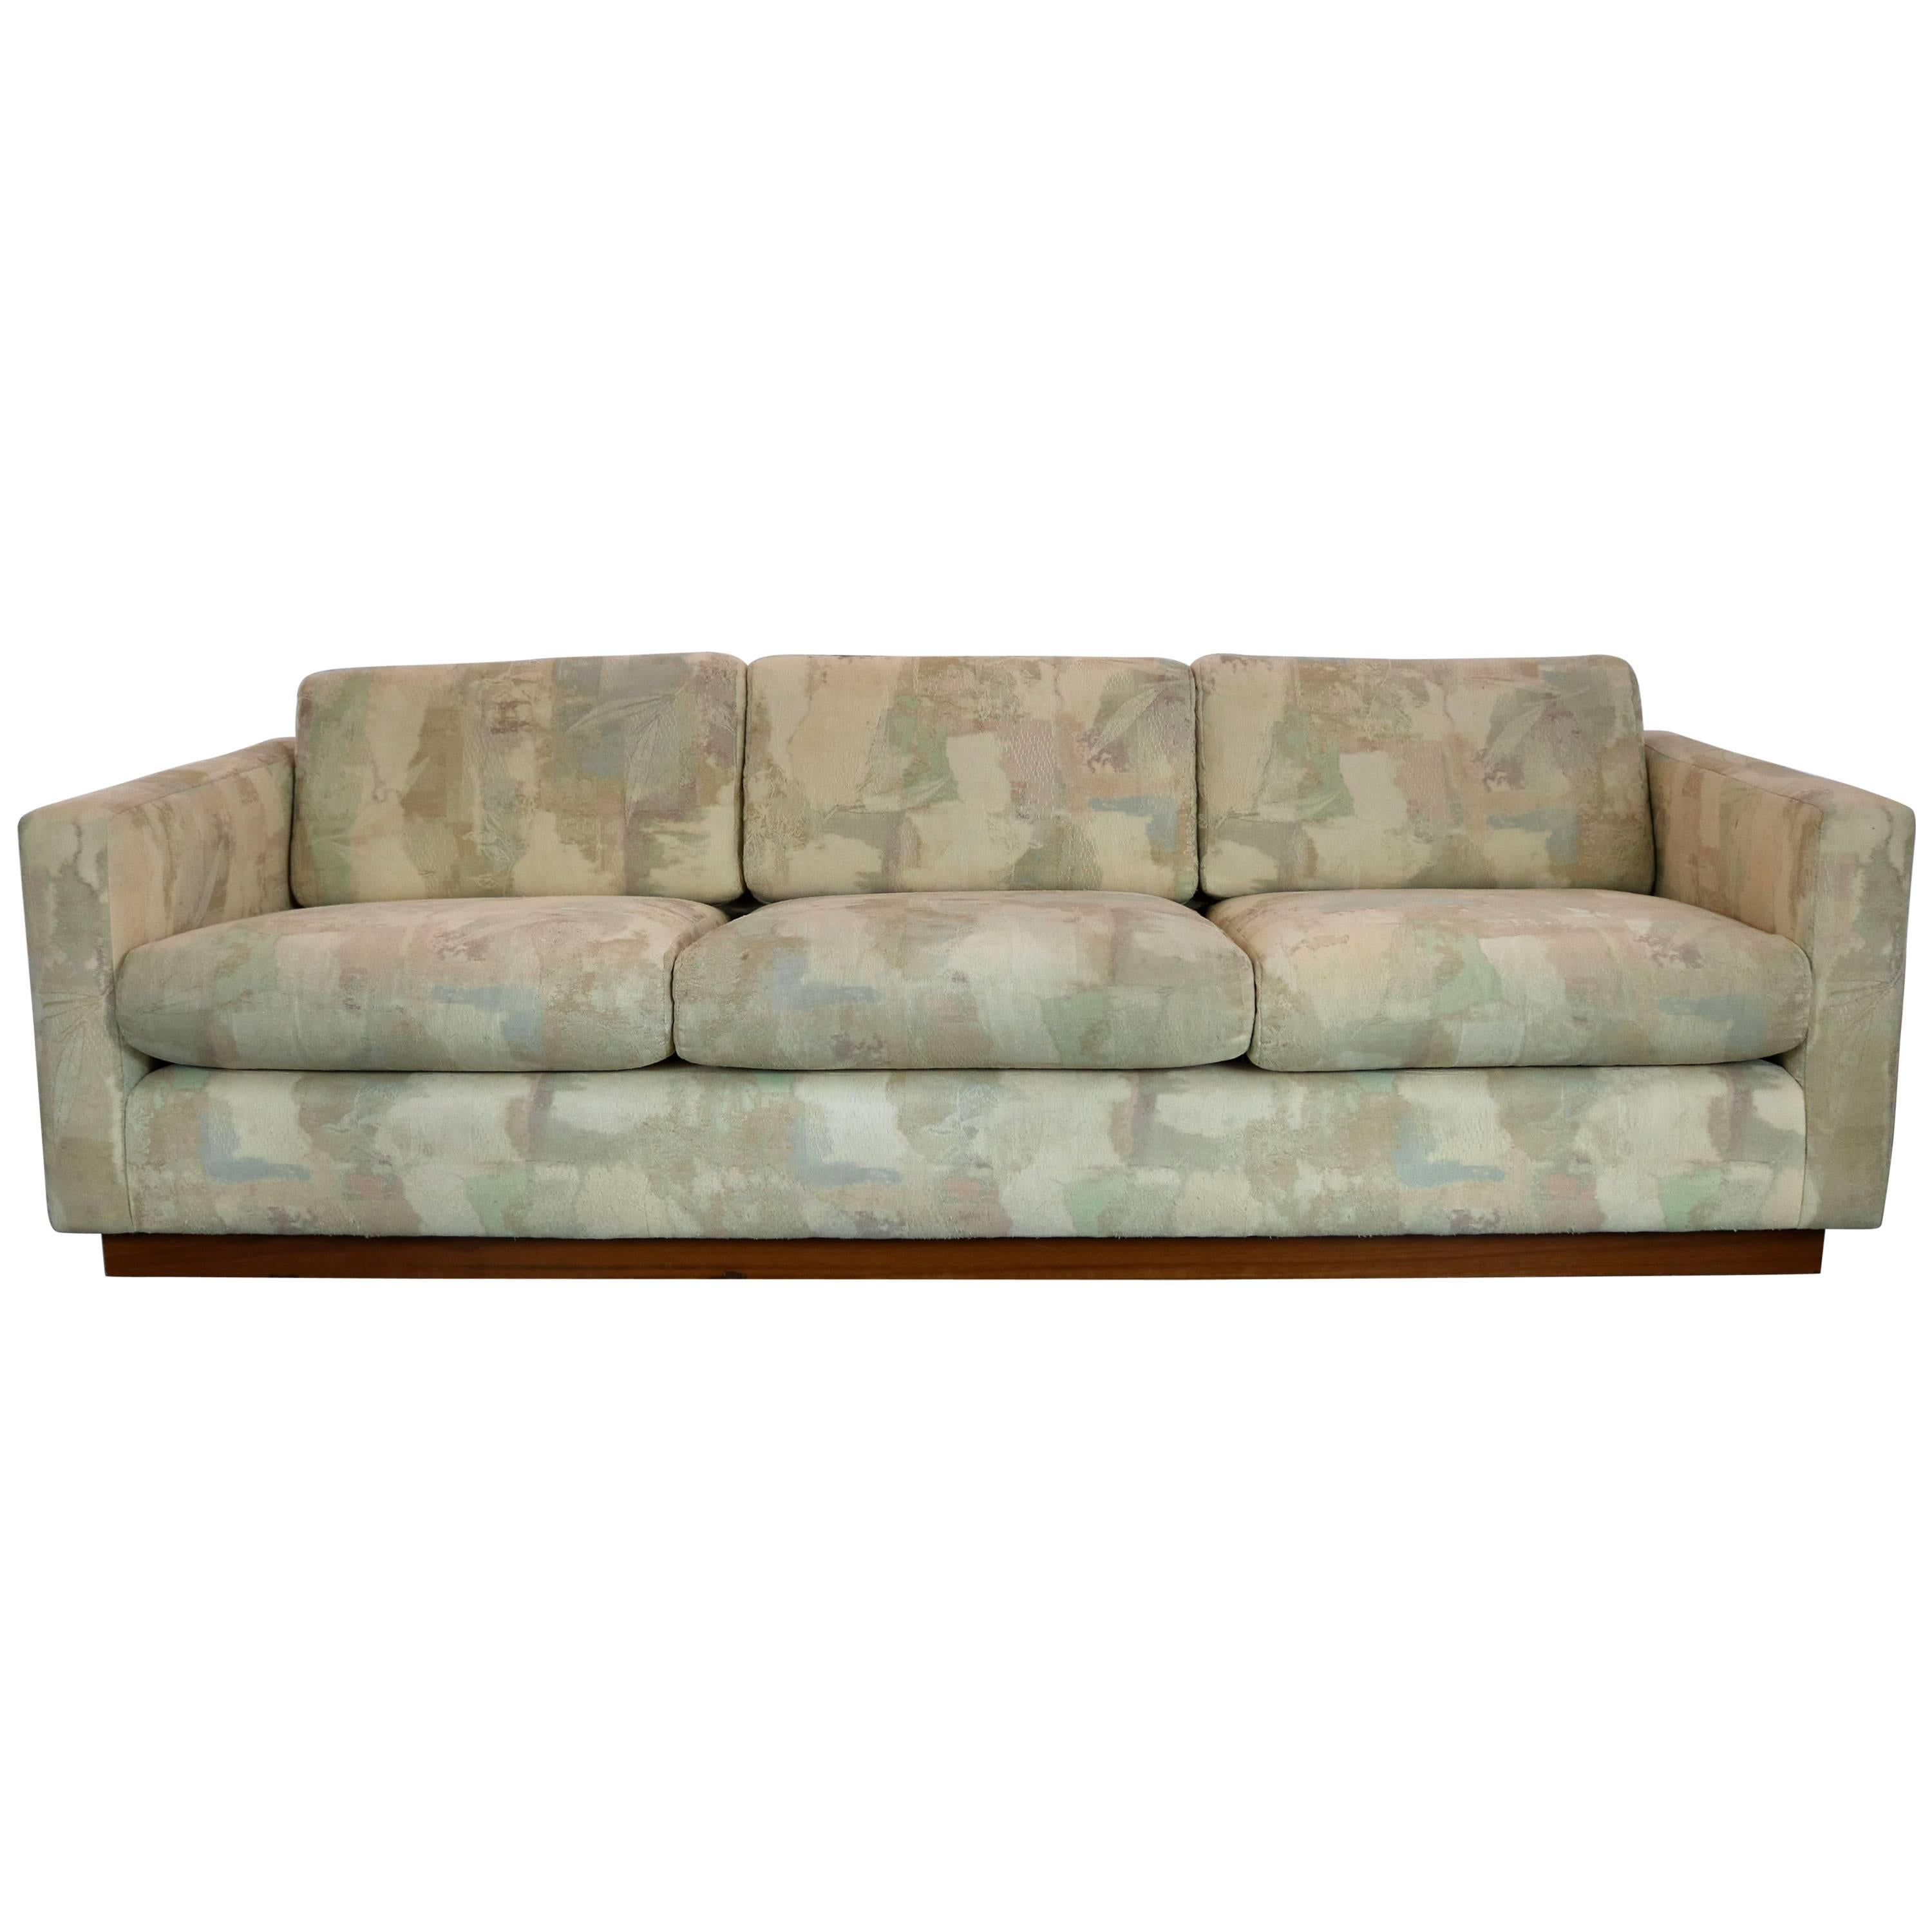 Marge Carson Sofa. floating tuxedo style sofa in the manner of milo baughman  sc 1 st  Choose a Home Design and Home Decor Your Best Here : marge carson bentley sectional - Sectionals, Sofas & Couches